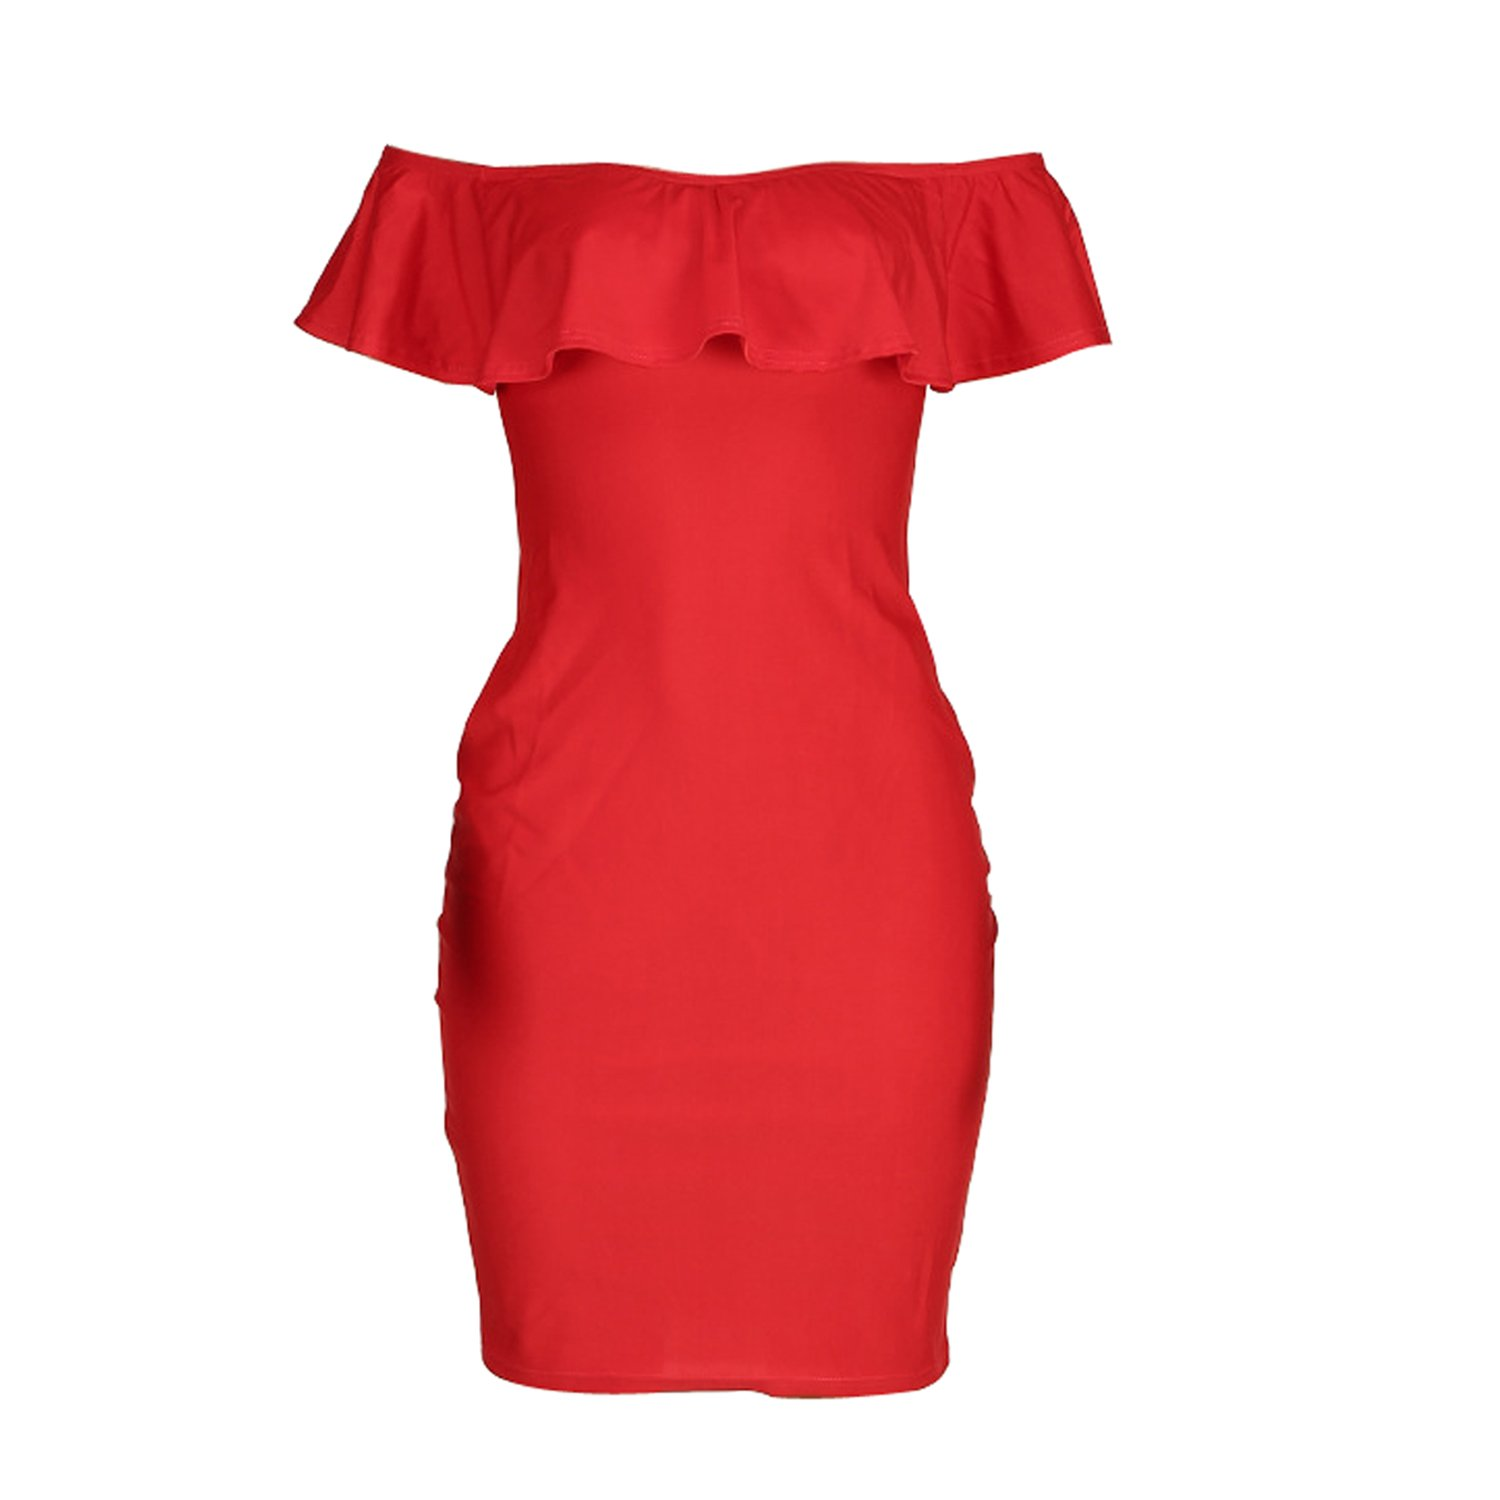 Fashion Dresses for Womens Party One Off Shoulder Ruffle Chest Bodycon Midi Dress (M, Red) at Amazon Womens Clothing store: